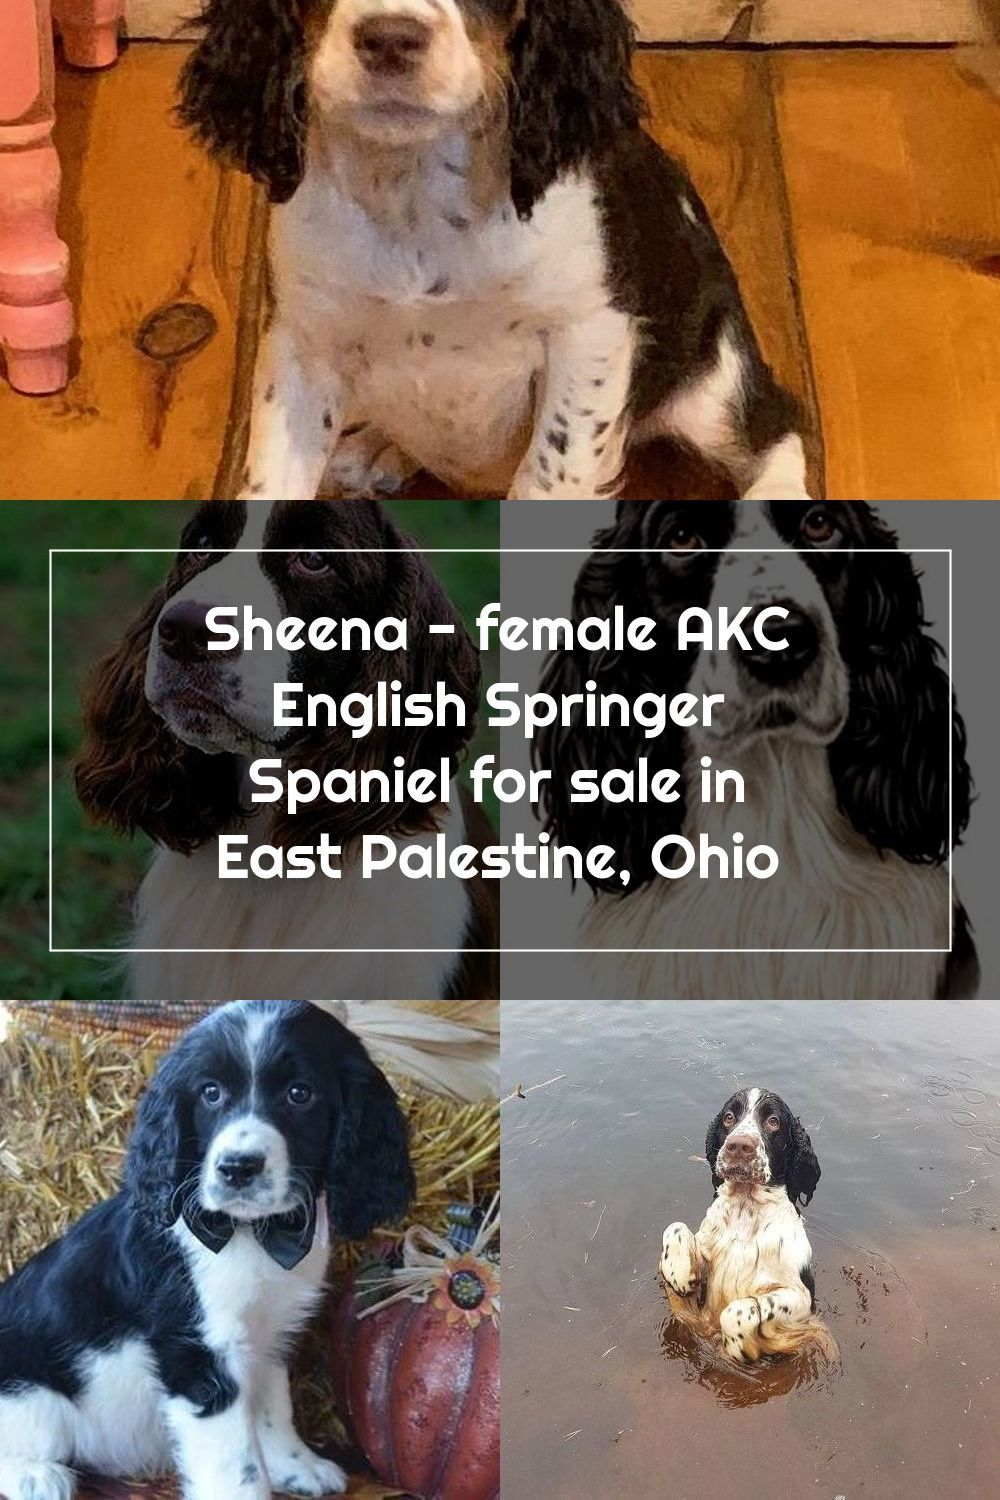 Meet Sheena Female Akc English Springer Spaniel For Sale In East Palestine In 2020 English Springer Spaniel Puppy English Springer Spaniel Springer Spaniel For Sale